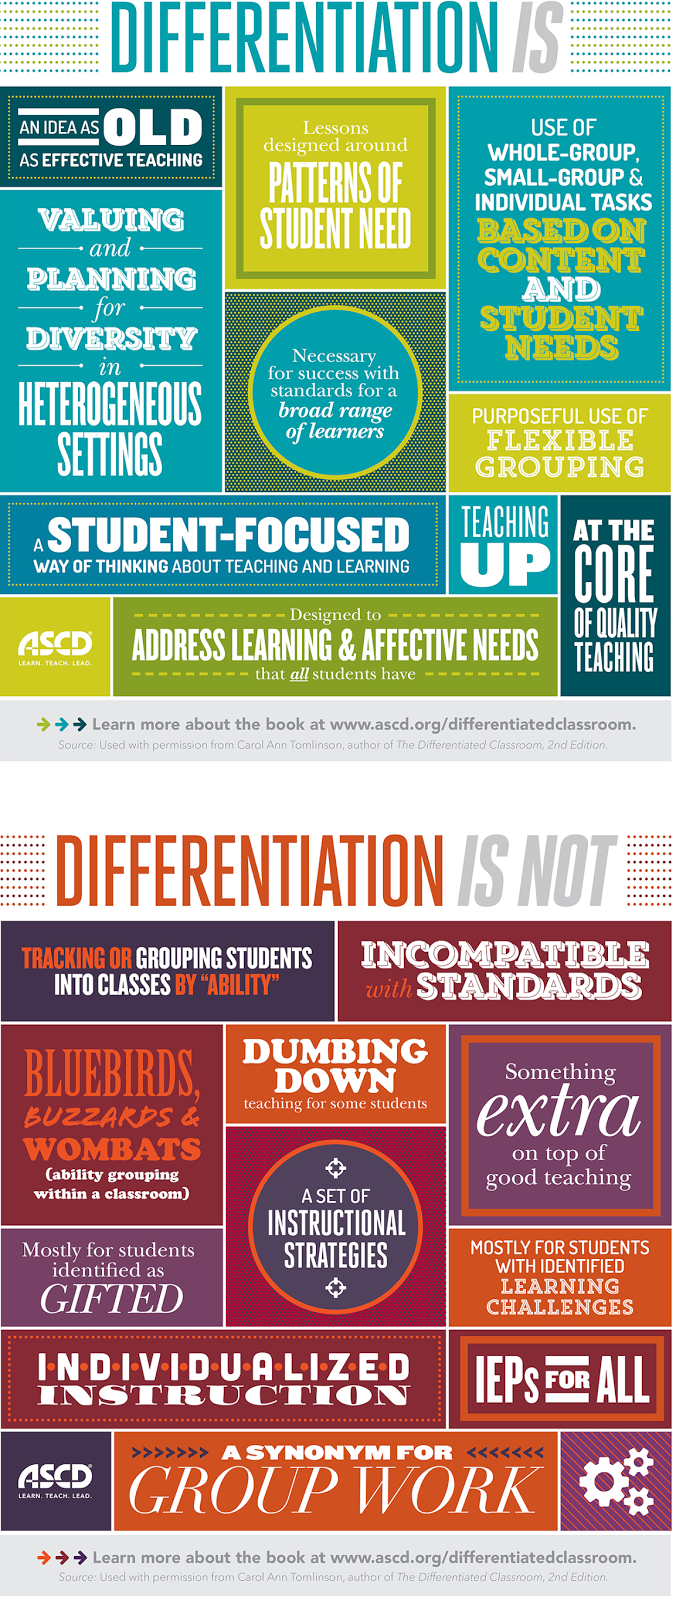 Differentiation What It Is And What It Is Not Infographic